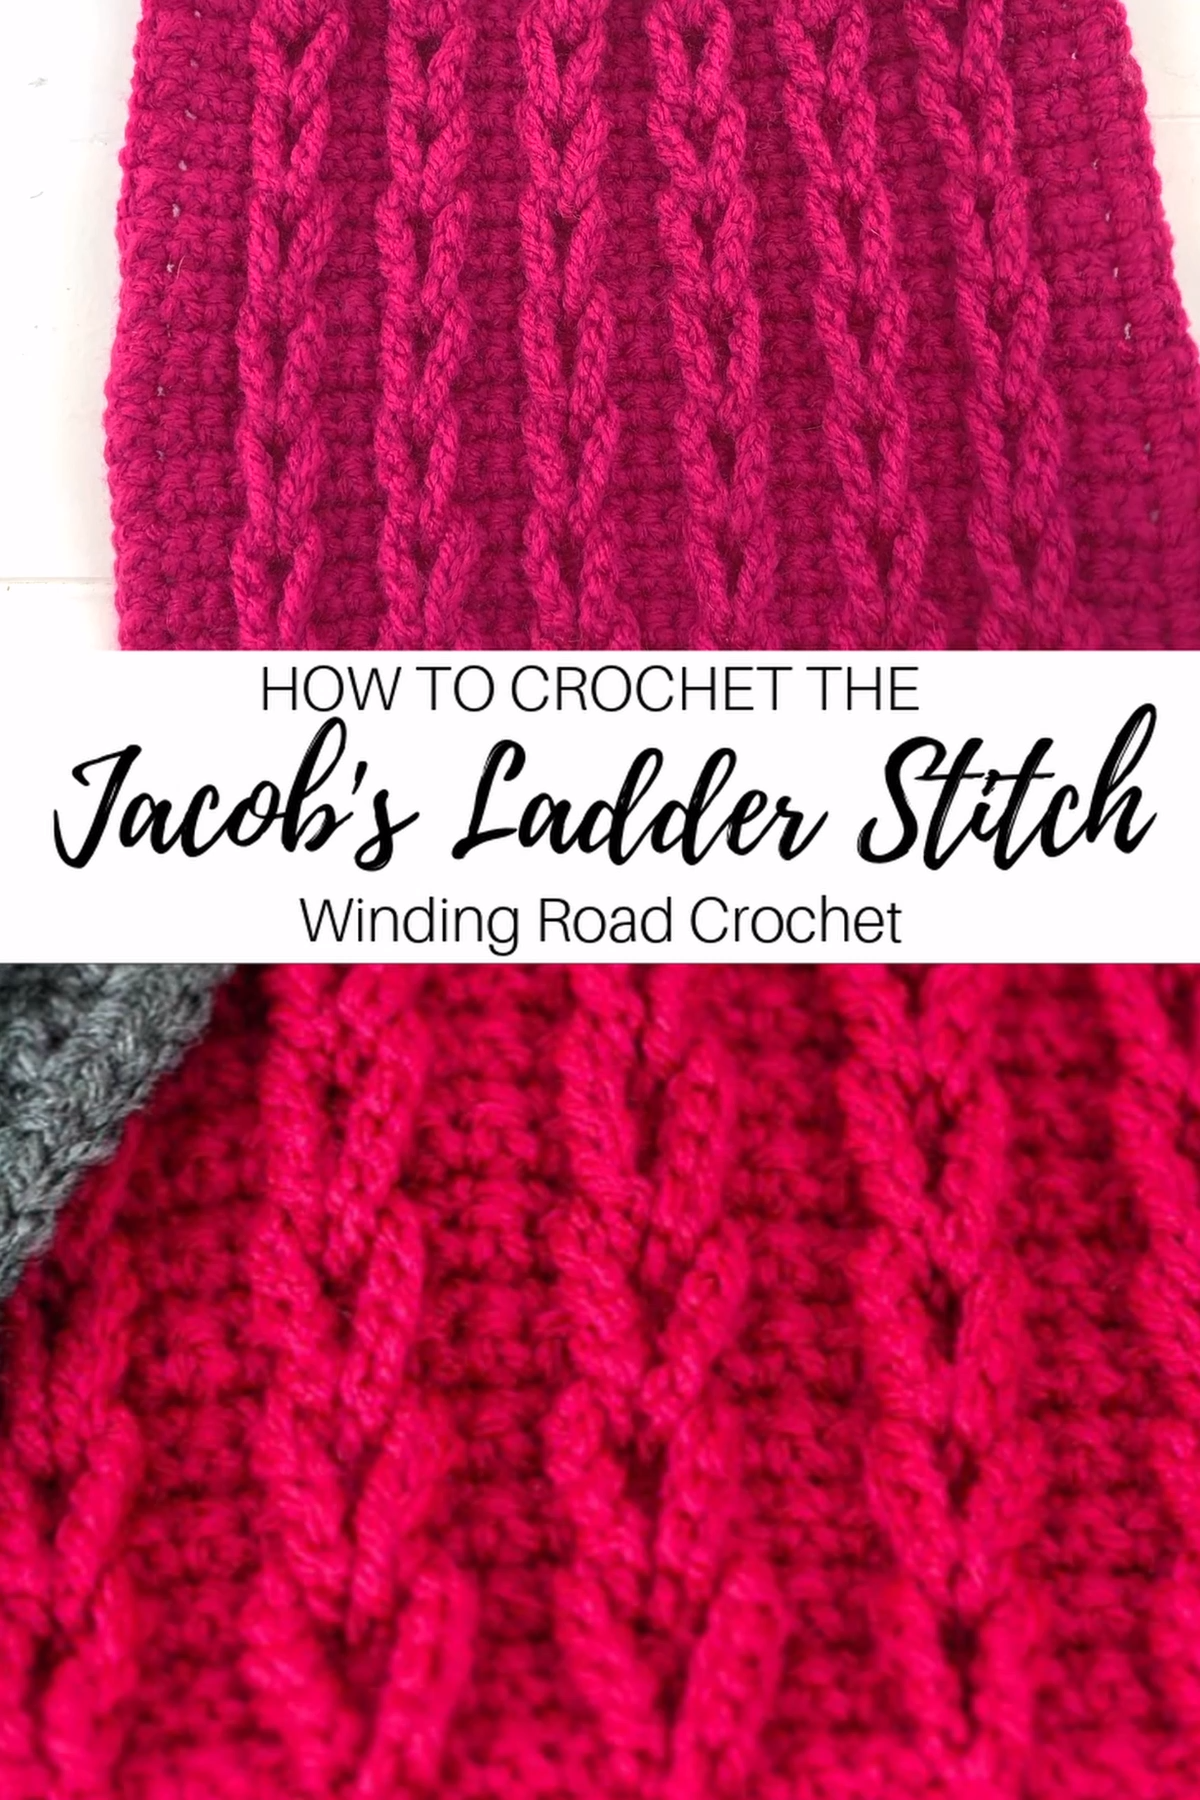 How to Crochet: jacob's Ladder Stitch Video Tutorial -  Learn to crochet chain cables or jacob's ladder stitch with this video and photo tutorial. #crochet #crochetstitch #crochetvideotutorial #jacobsladder Crocheters don't use pointy knitting needles or machines to generate the tasks; they will make use of a single crochet hook. The actual land could be small or large, or maybe any kind of measurement within between. It would typically possibly be crafted from metallic, light weight aluminum,